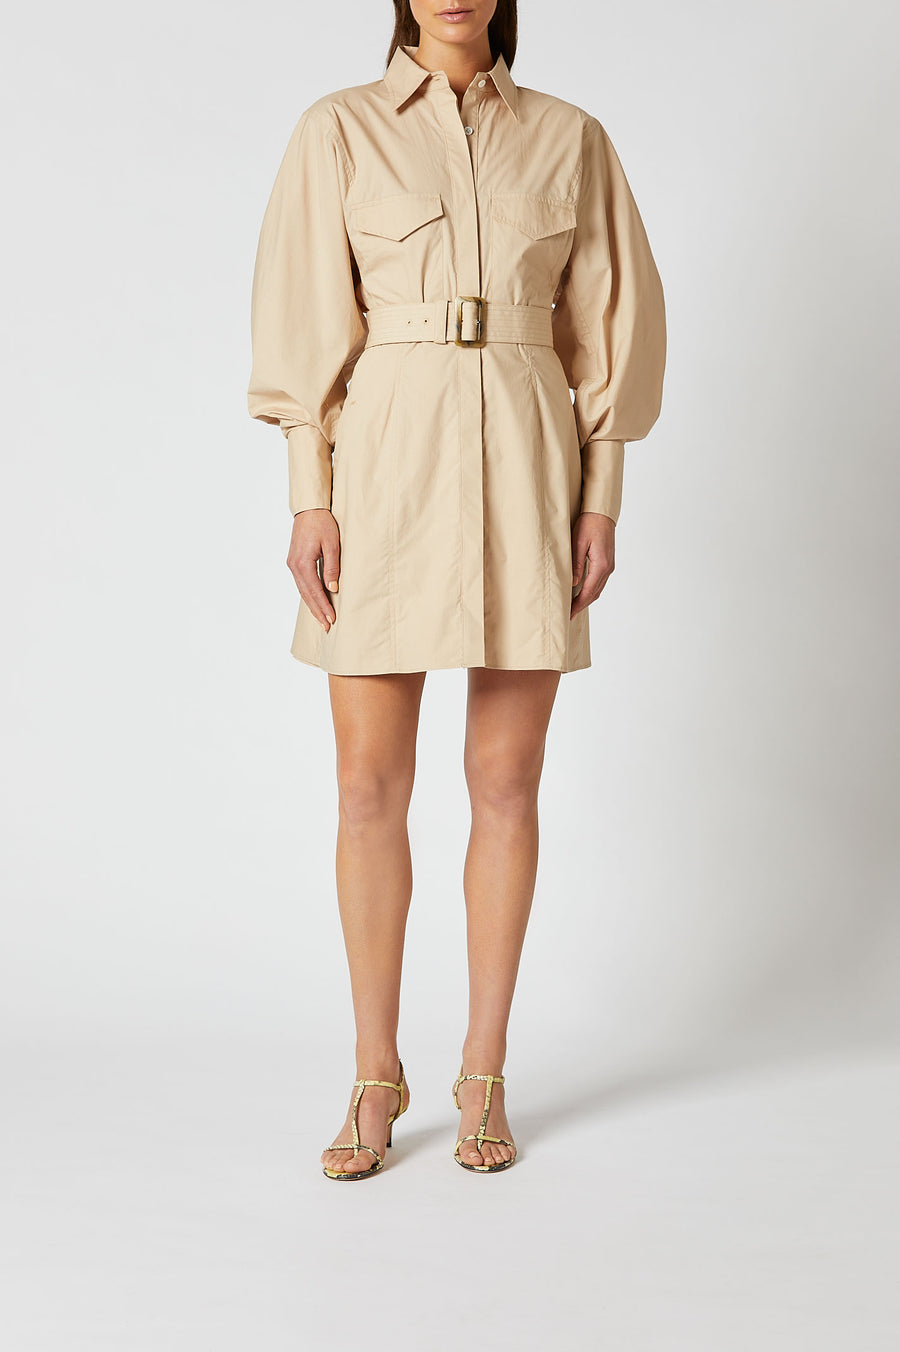 Featuring statement pocket details and exaggerated cuffs, the dress is cut to an A-line silhouette with long sleeves and front button closure.